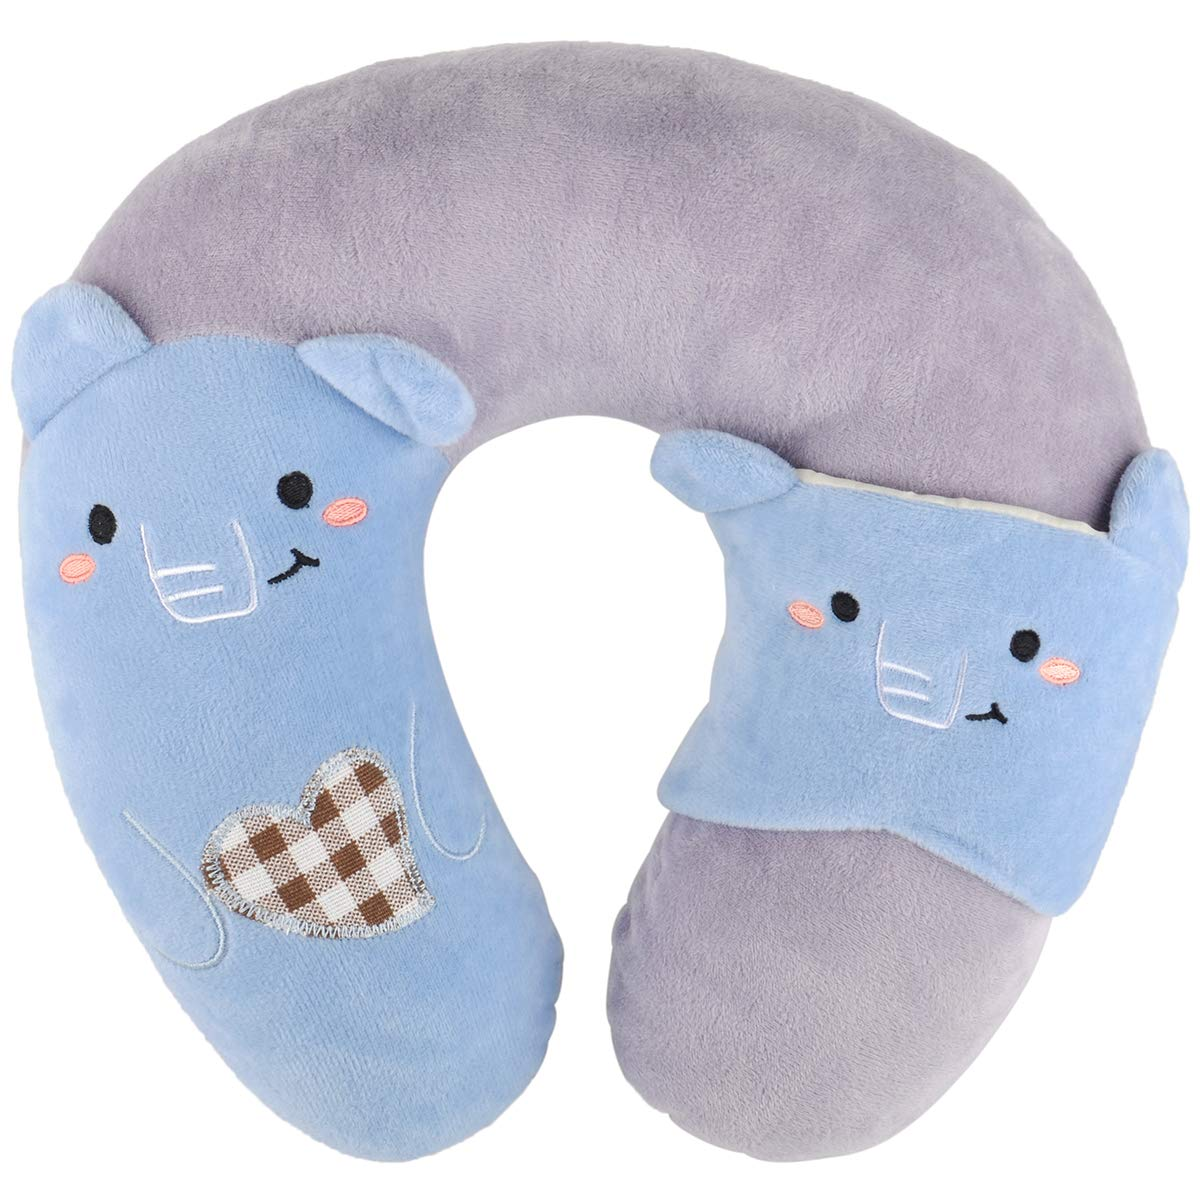 ZhengYou Travel Pillow for Kids-Soft Neck Head Chin Support Pillow Mask.Includes Eye Mask for Quality Sleep, Car and Airplane Travel for Children 4 and Up. (Gray) by ZhengYou